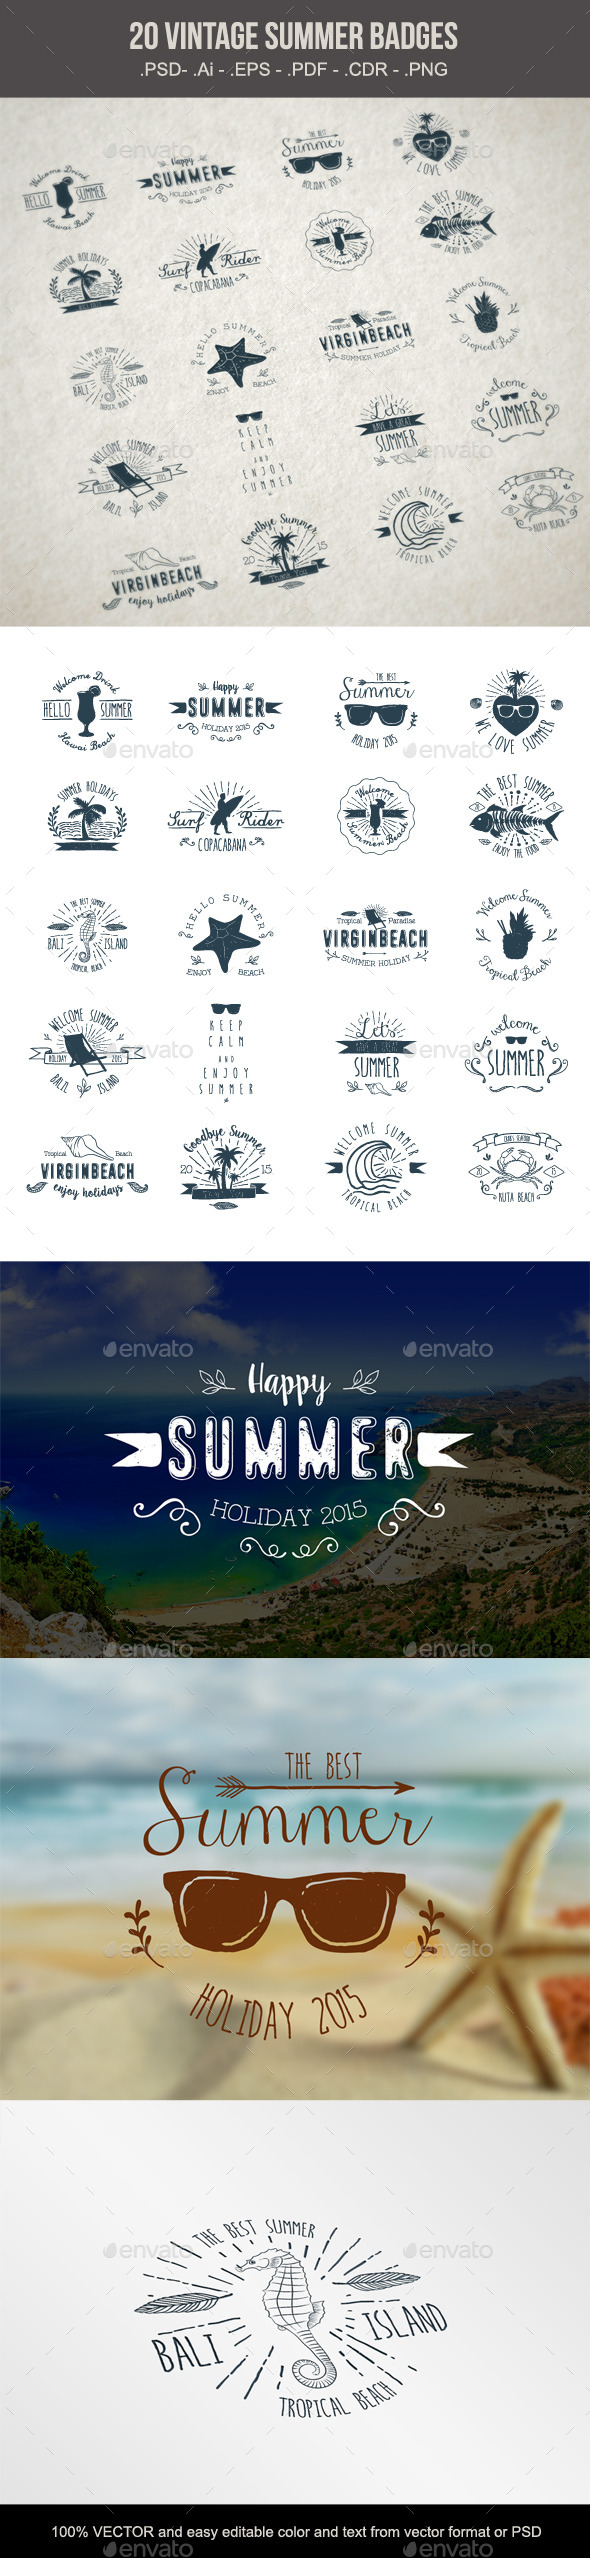 GraphicRiver 20 Summer Badges 10307744